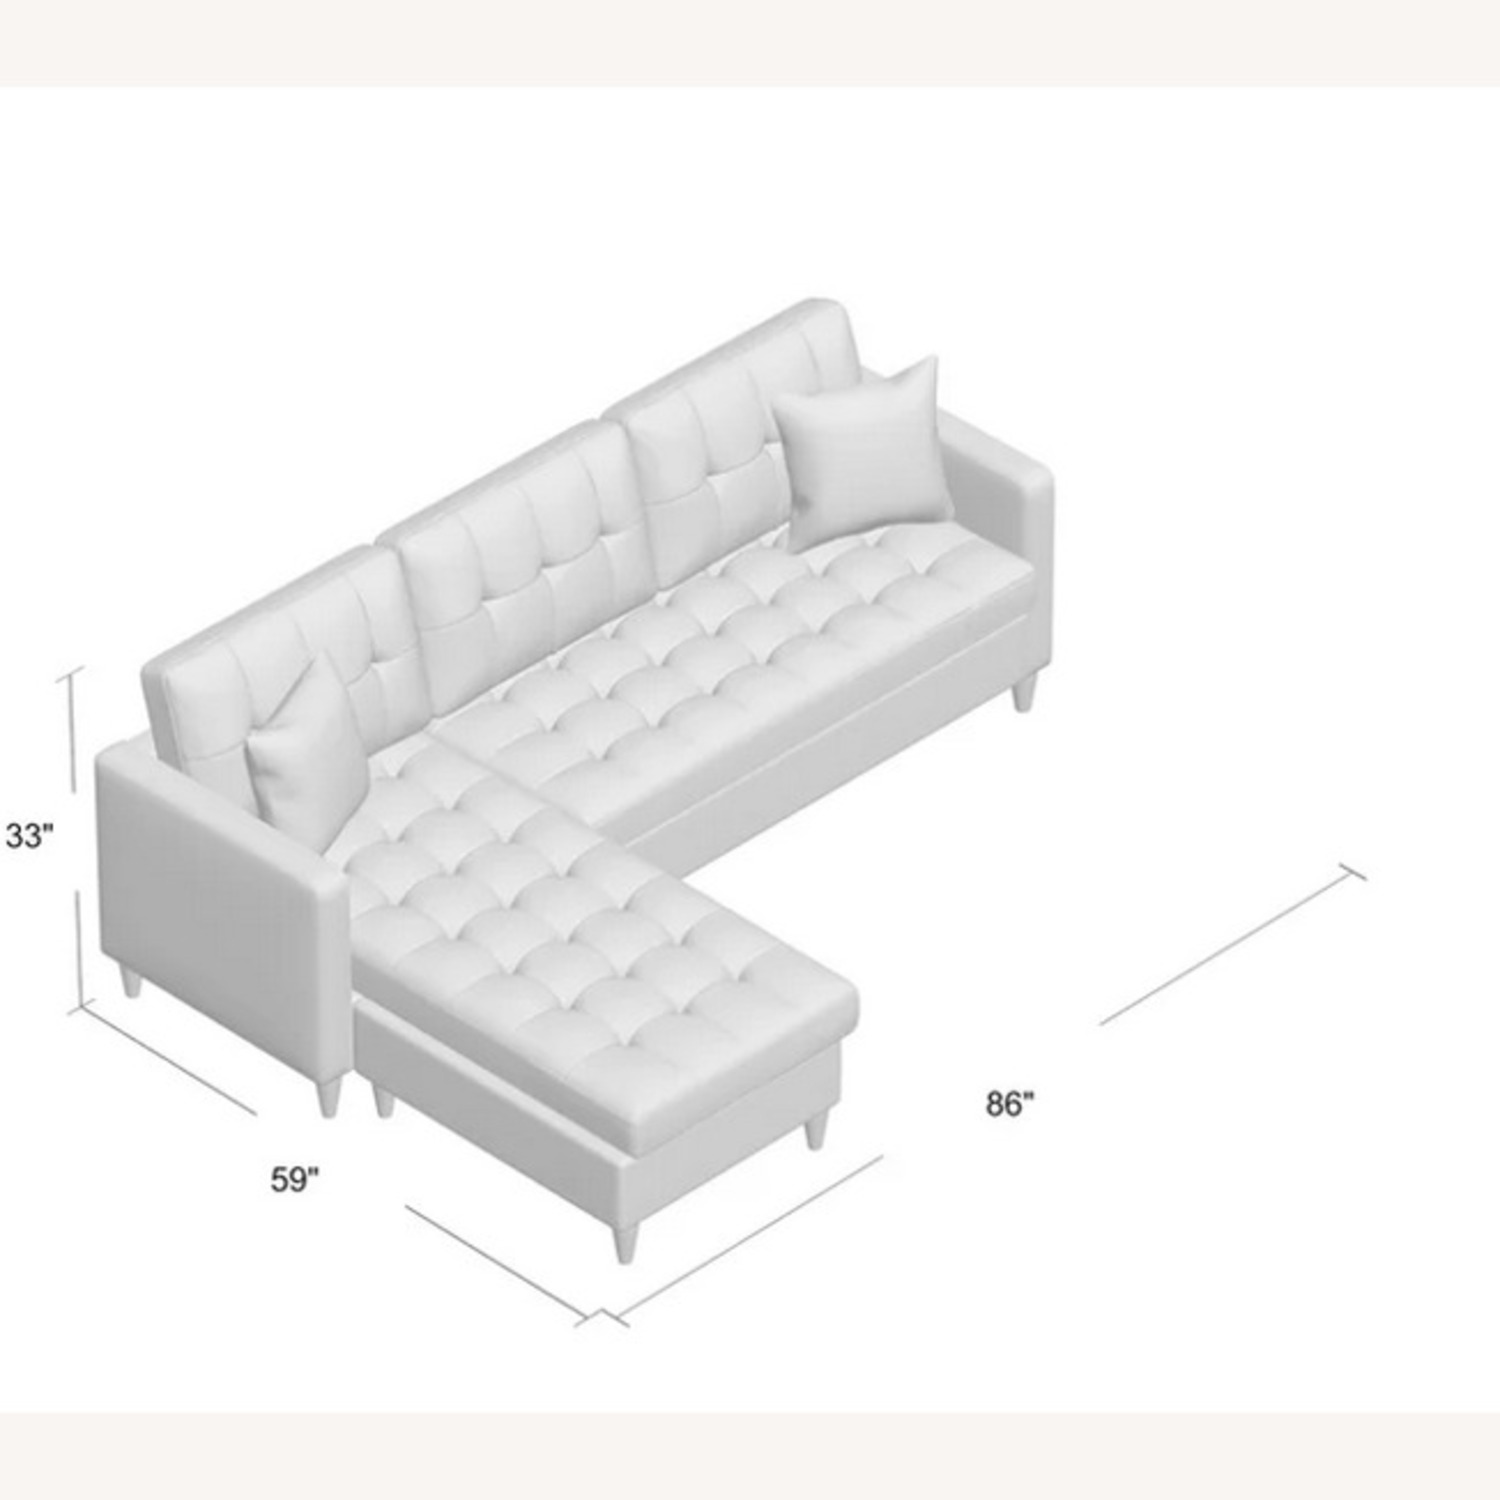 Wayfair Haskell Sofa & Chaise Sectional - image-3